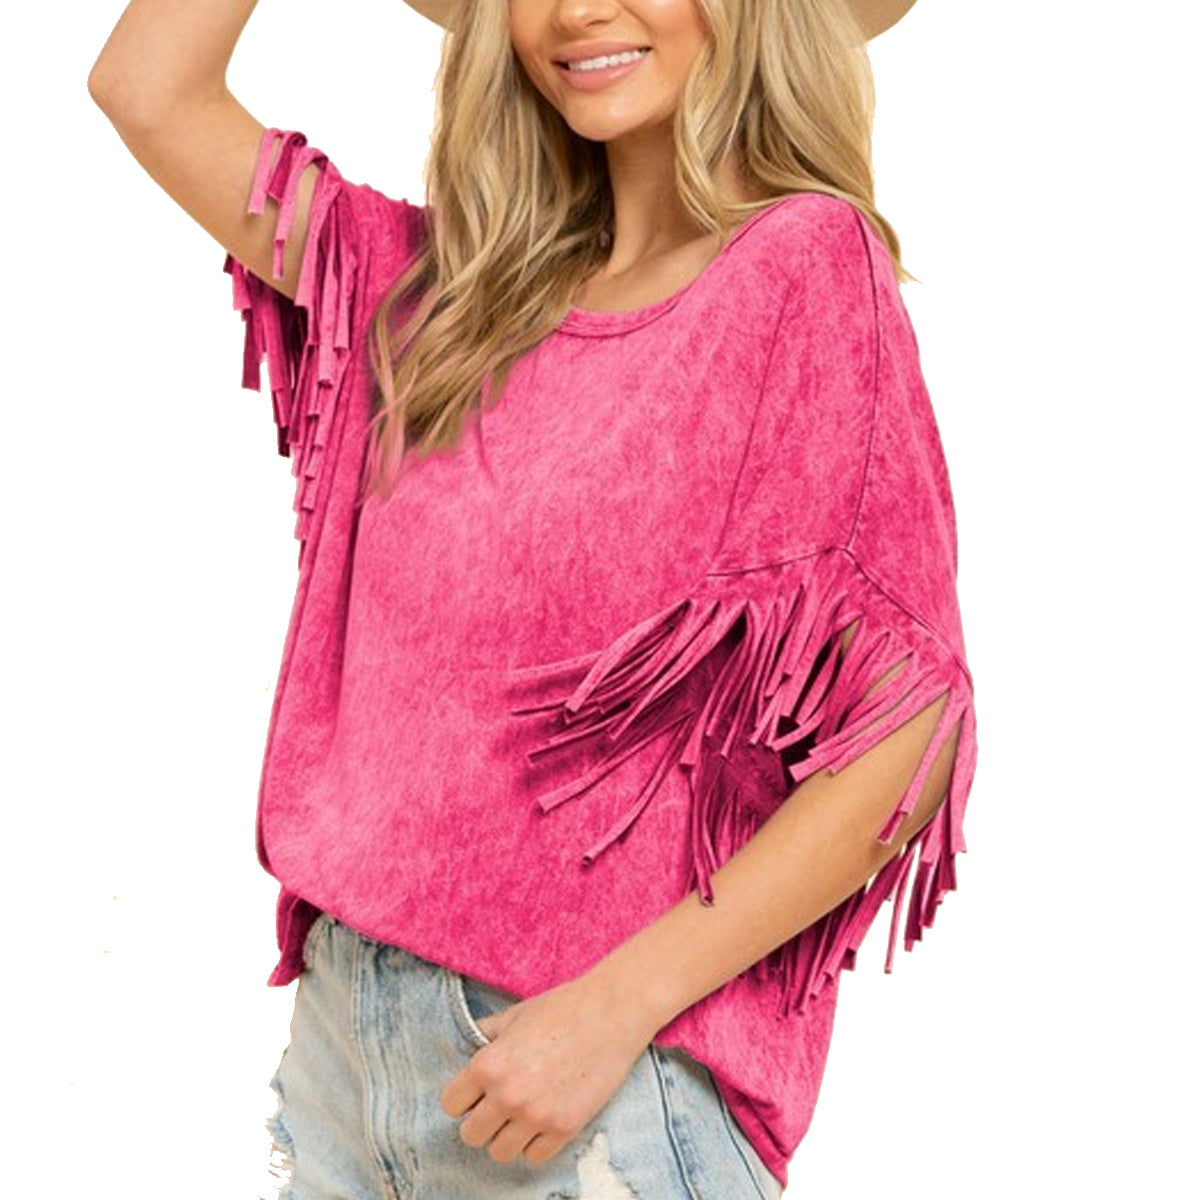 Blue Buttercup Women's Mineral Dyed Fringe Top - Camel